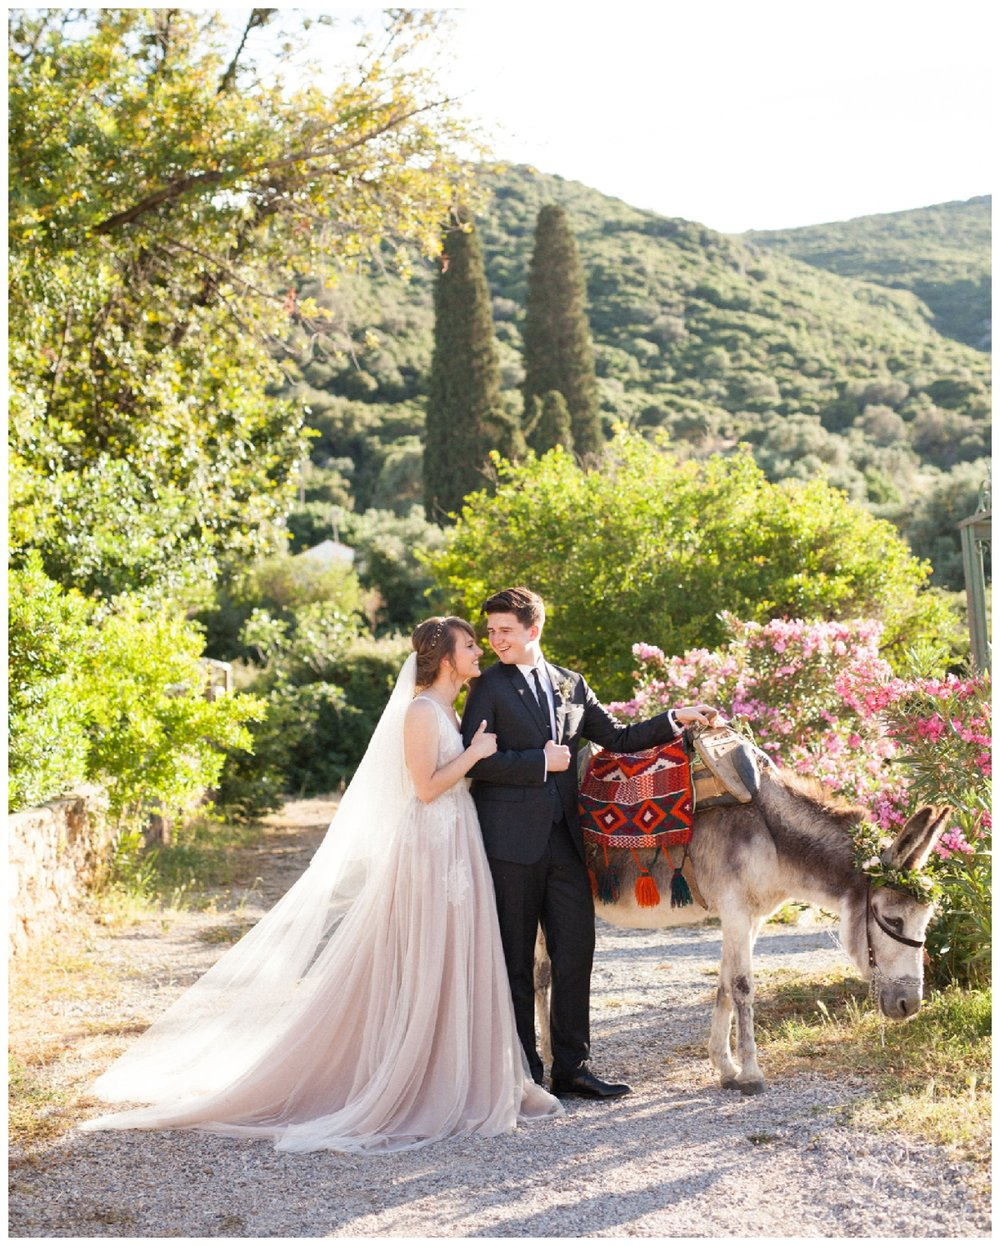 Greek Destination Wedding - Tessa Kit Photography - Wedding Photographer - Monemvasia Greece - IMG_2919-.jpg